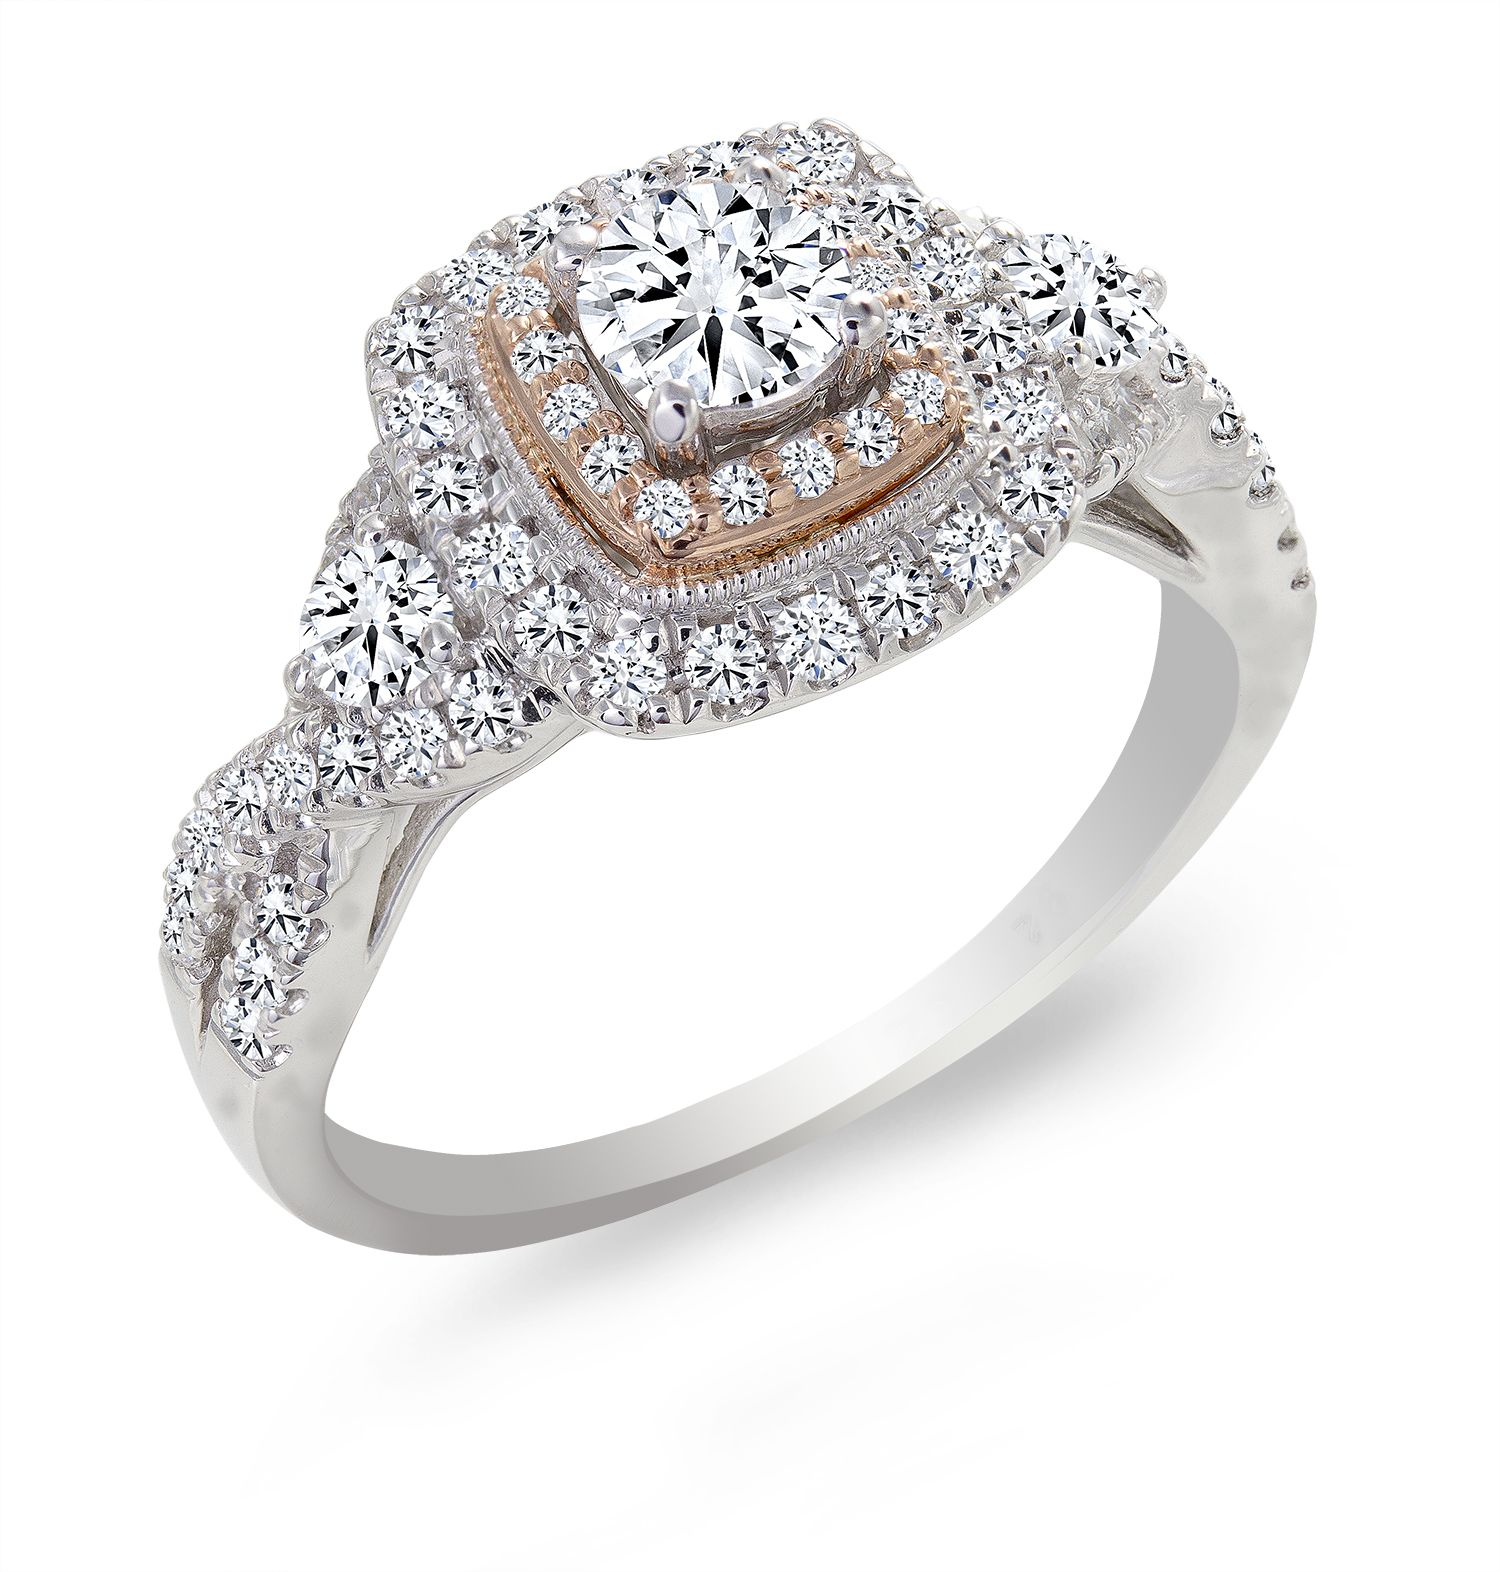 Canadian Rocks rose gold accented diamond engagement ring